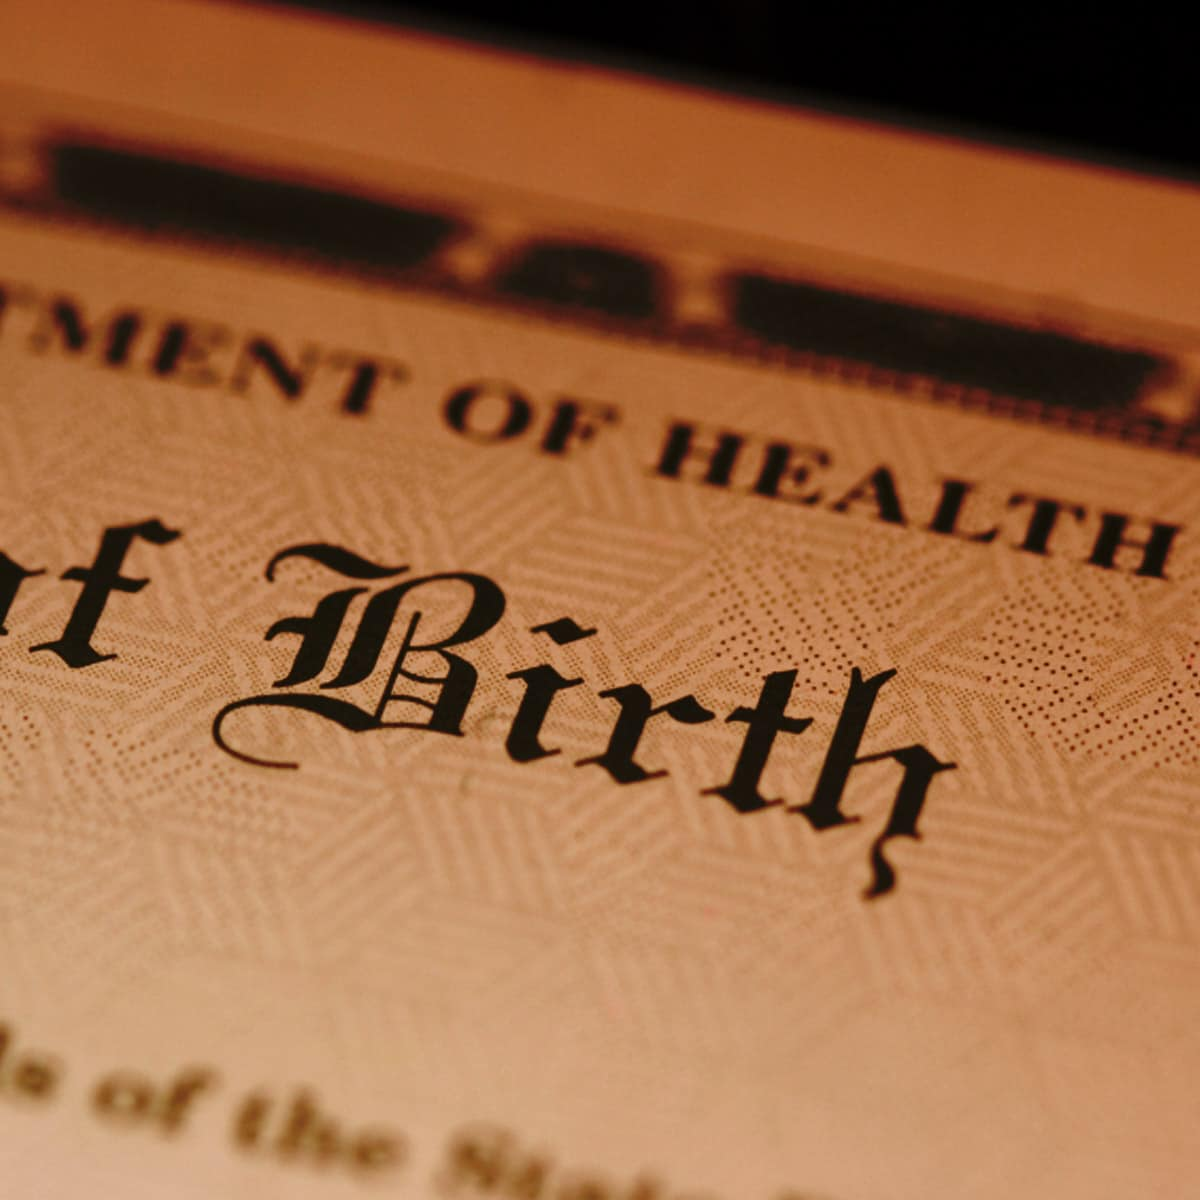 How to Obtain a Birth Certificate